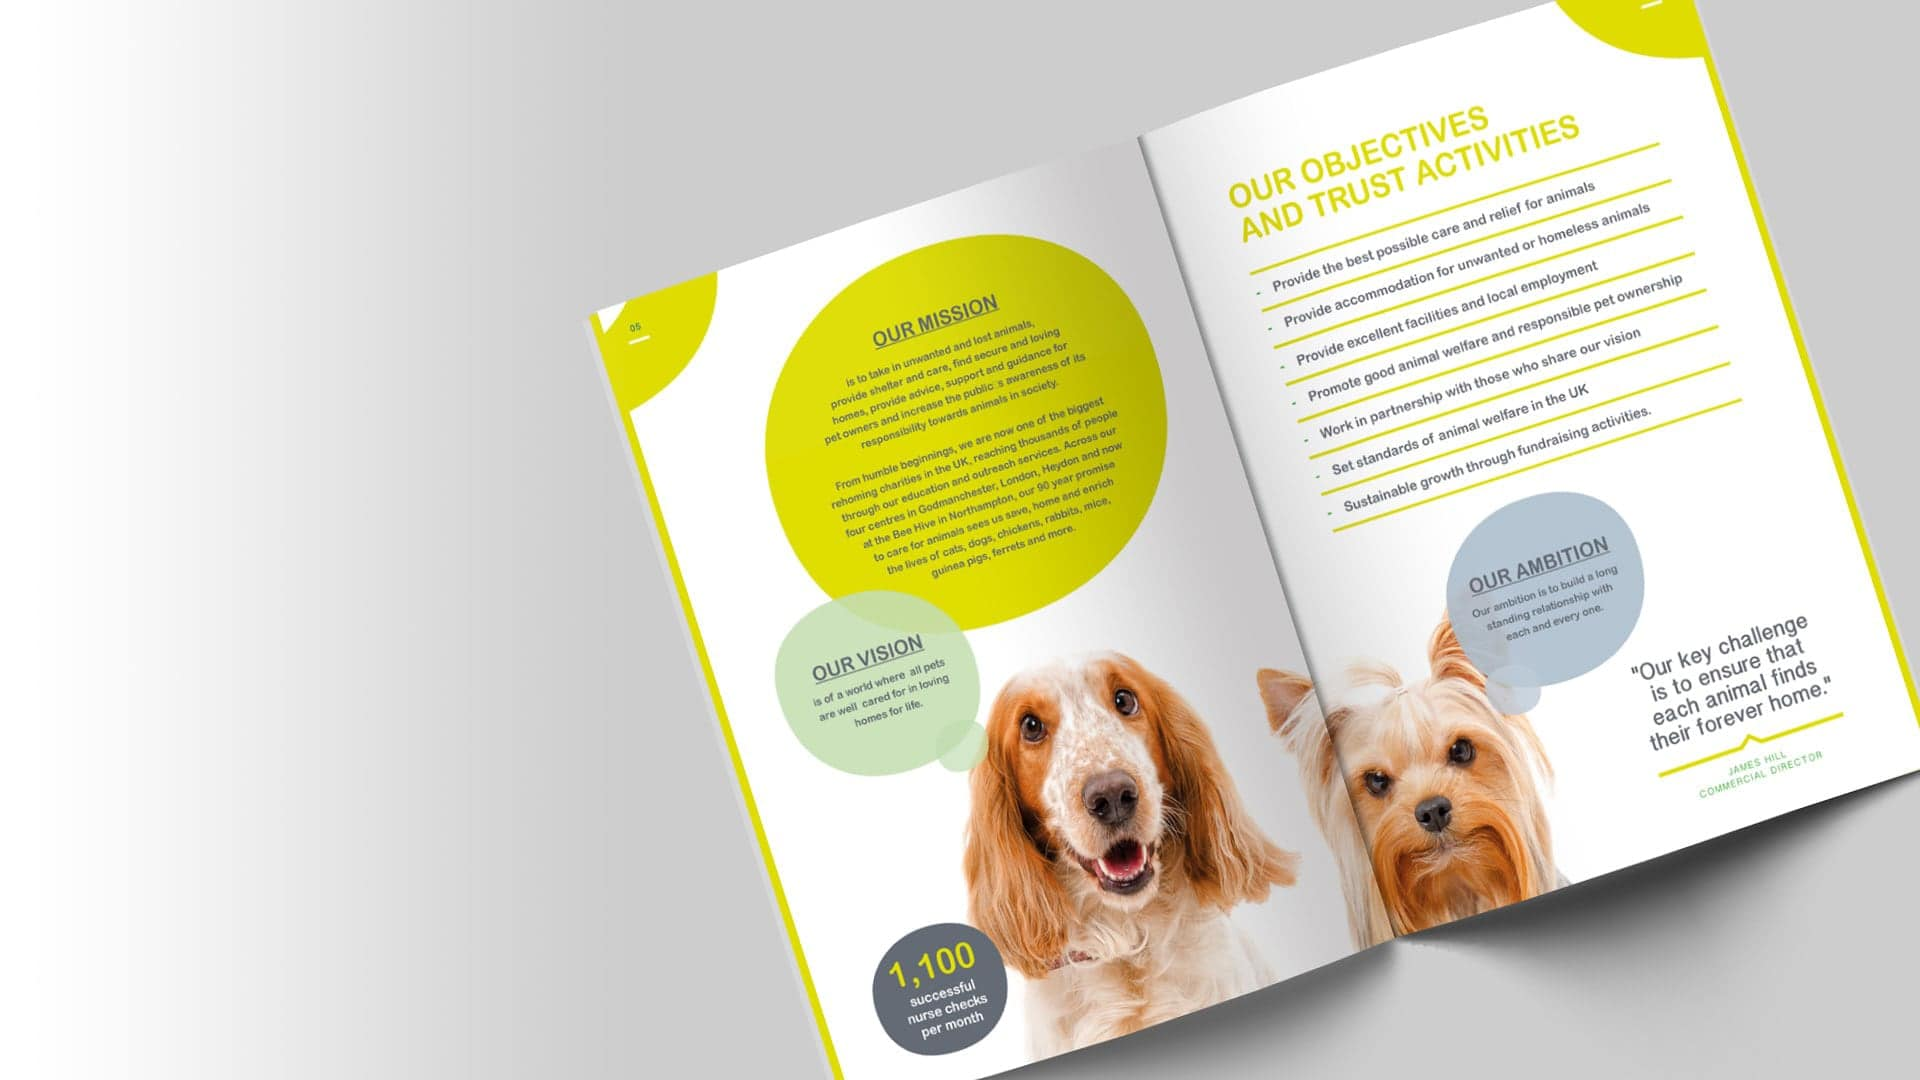 Polkadot Agency annual report designers - A Website Design Agency based in Yeovil, Somerset, UK - Yeovil Web Design, Somerset Web Design